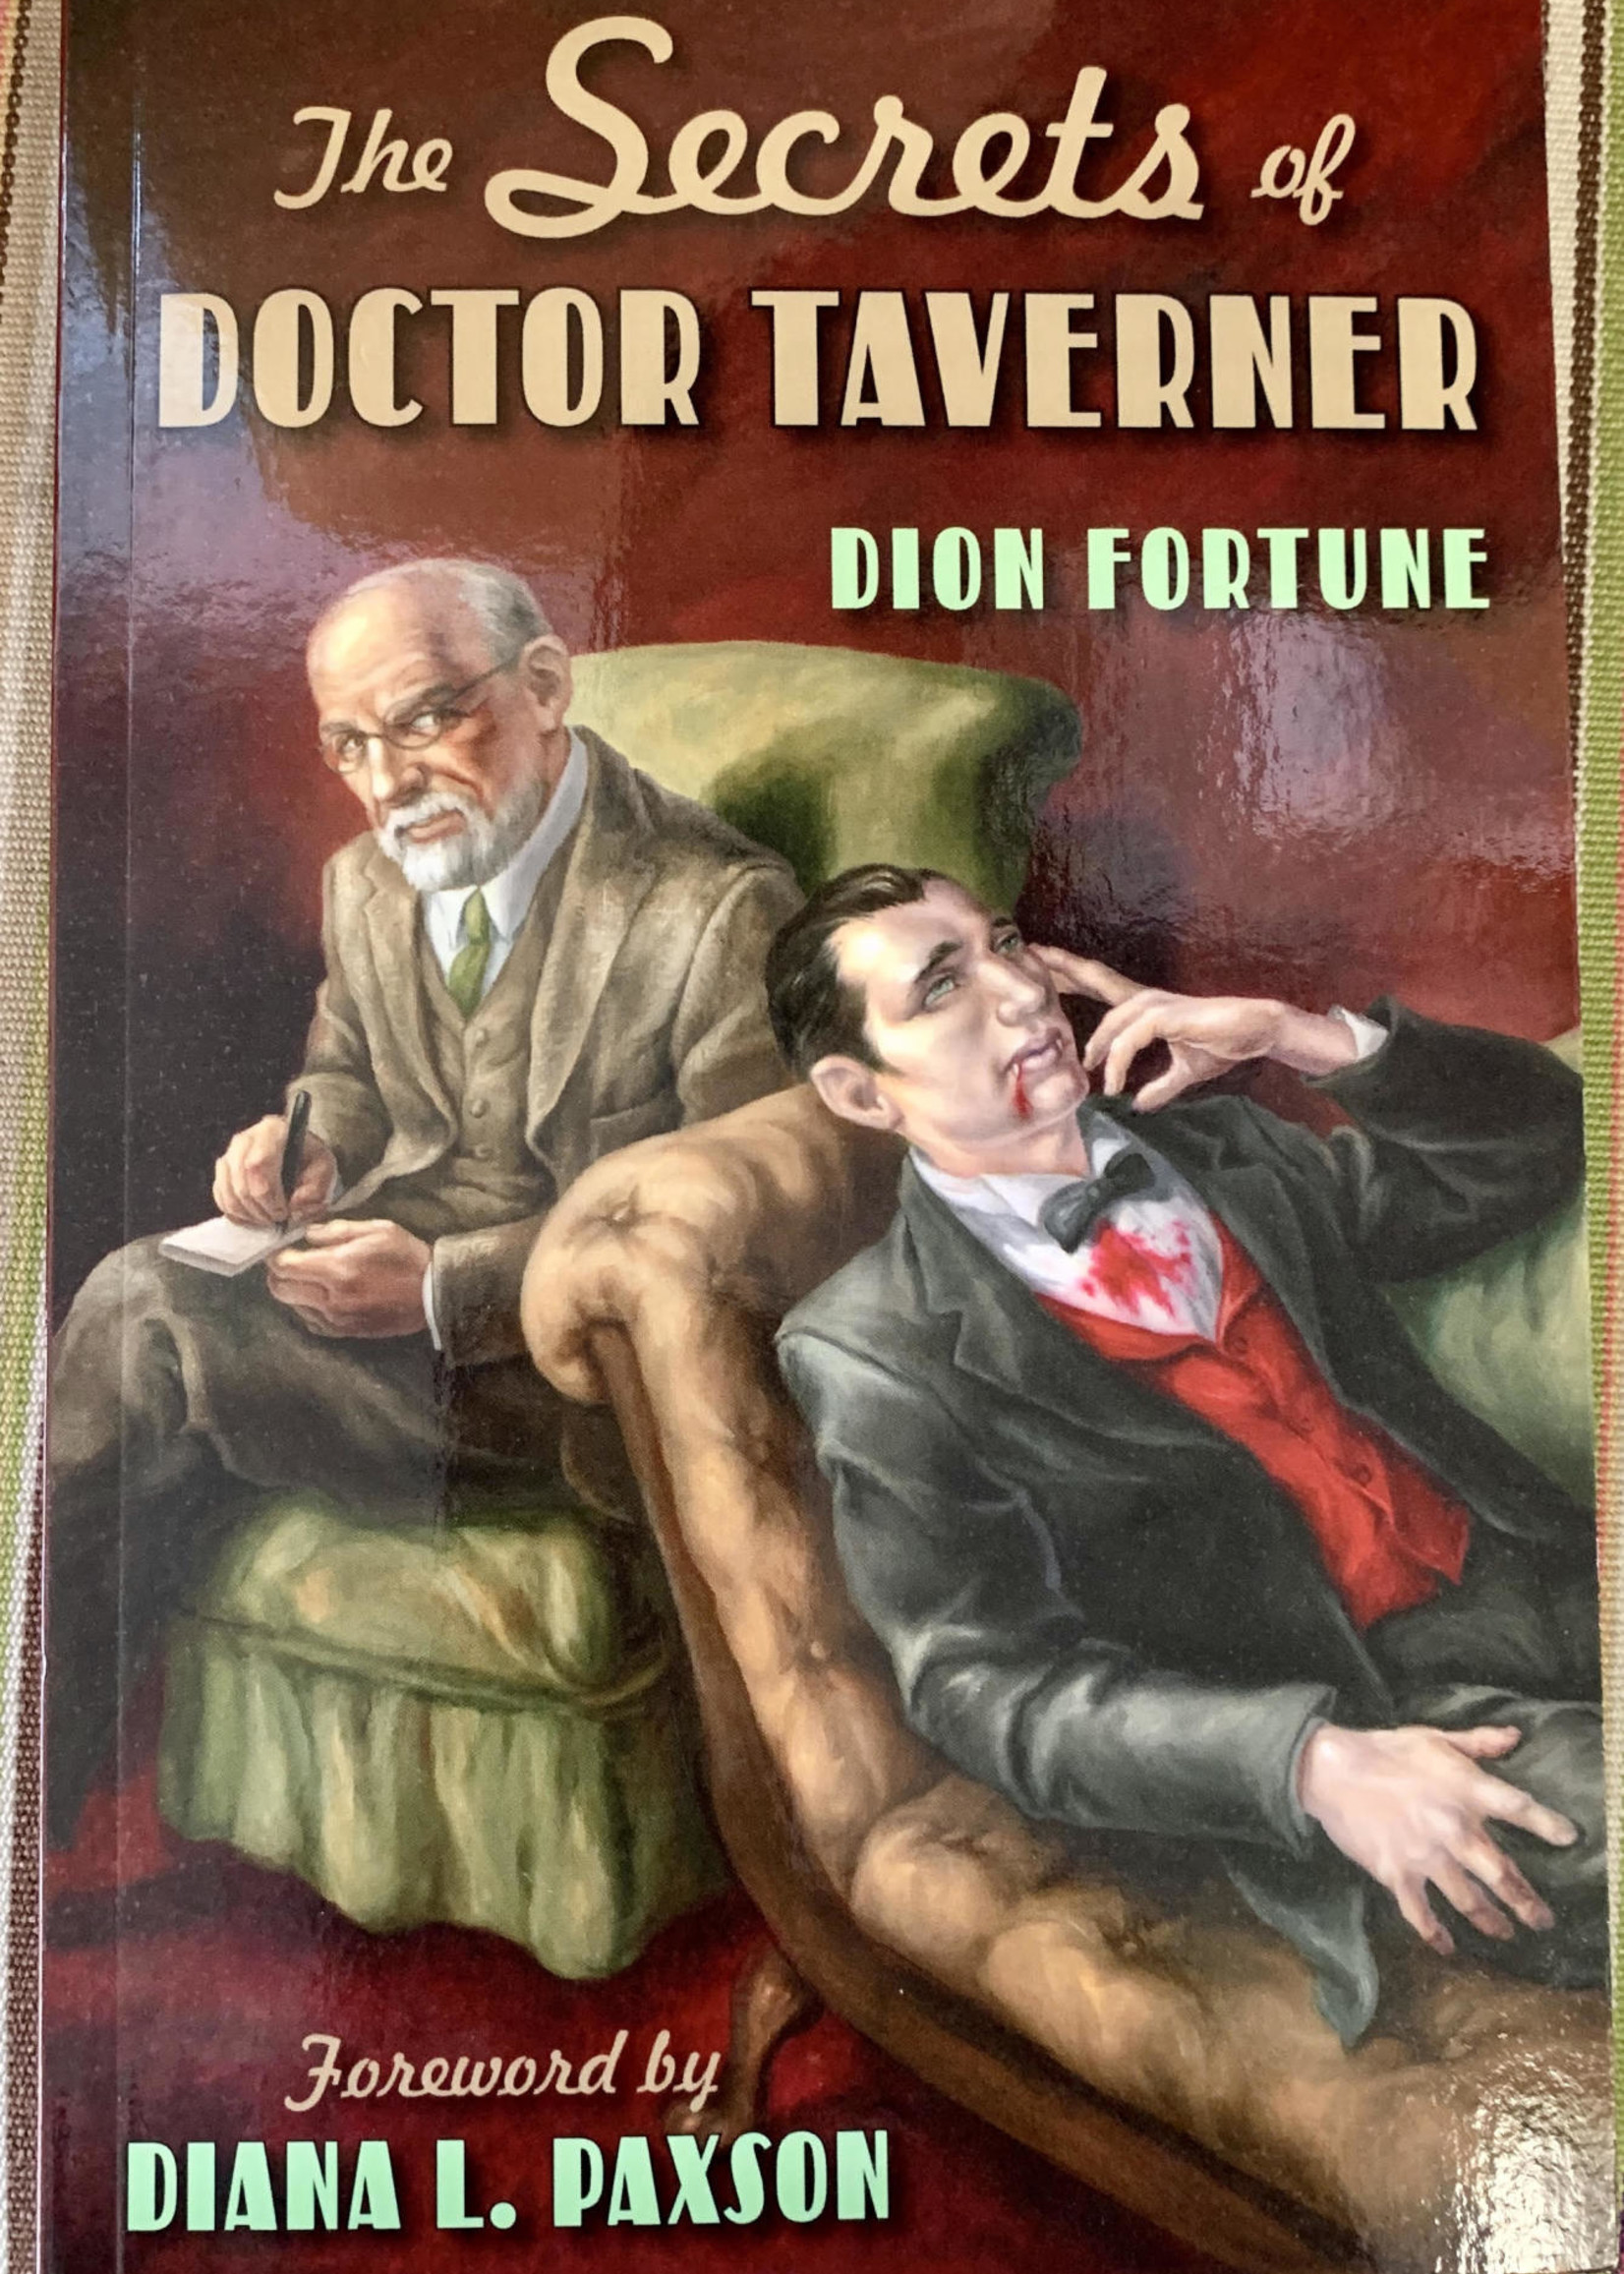 The Secrets of Doctor Taverner - Dion Fortune, Foreword by Diana L. Paxson